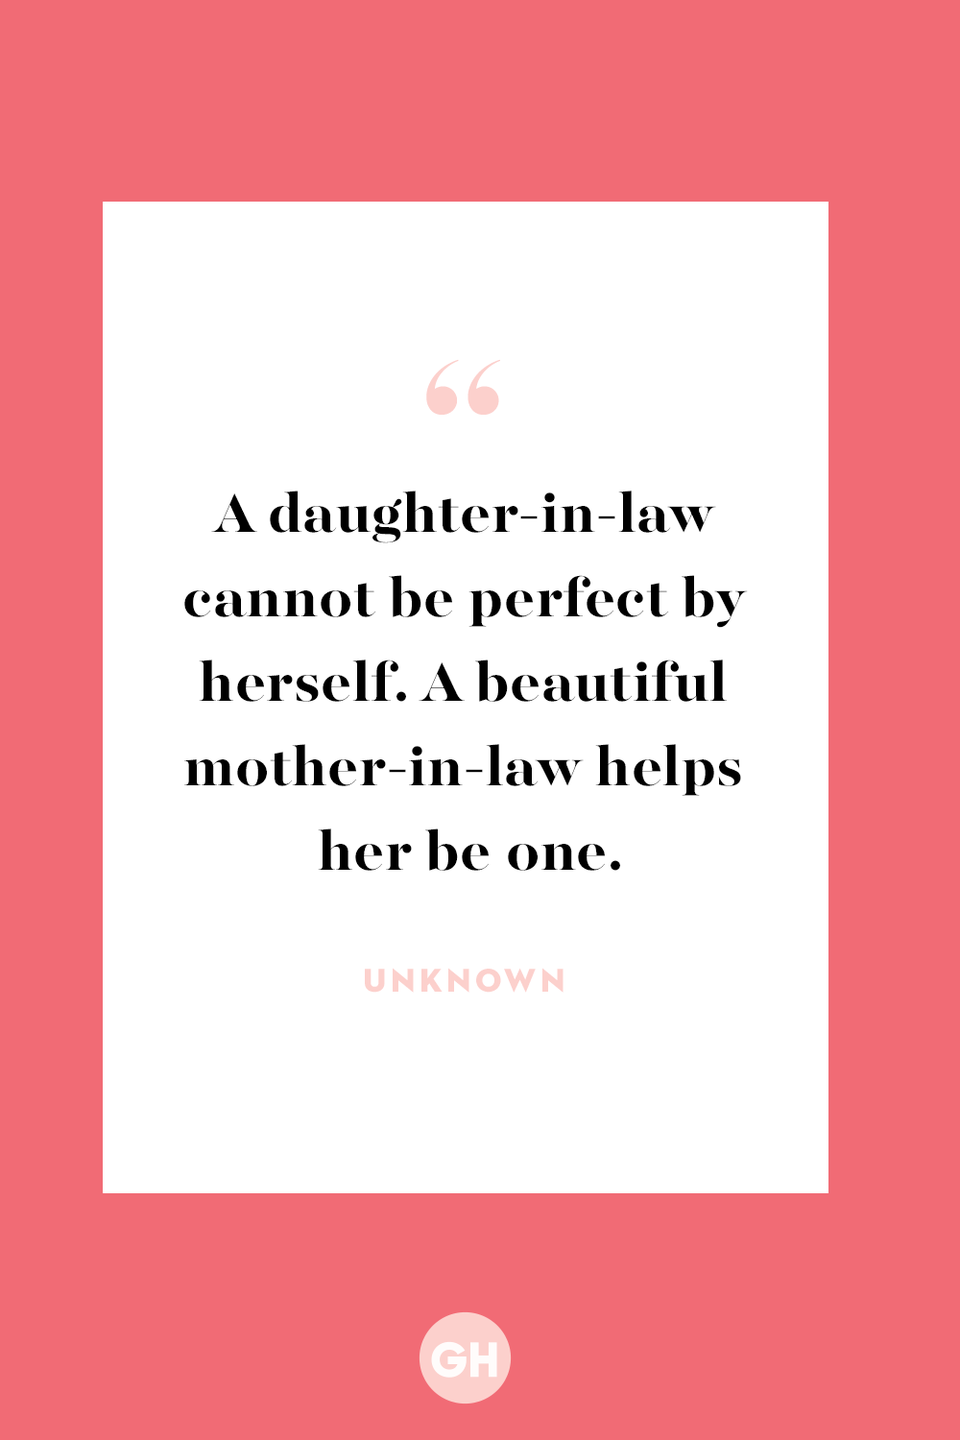 <p>A daughter-in-law cannot be perfect by herself. A beautiful mother-in-law helps her be one.</p>